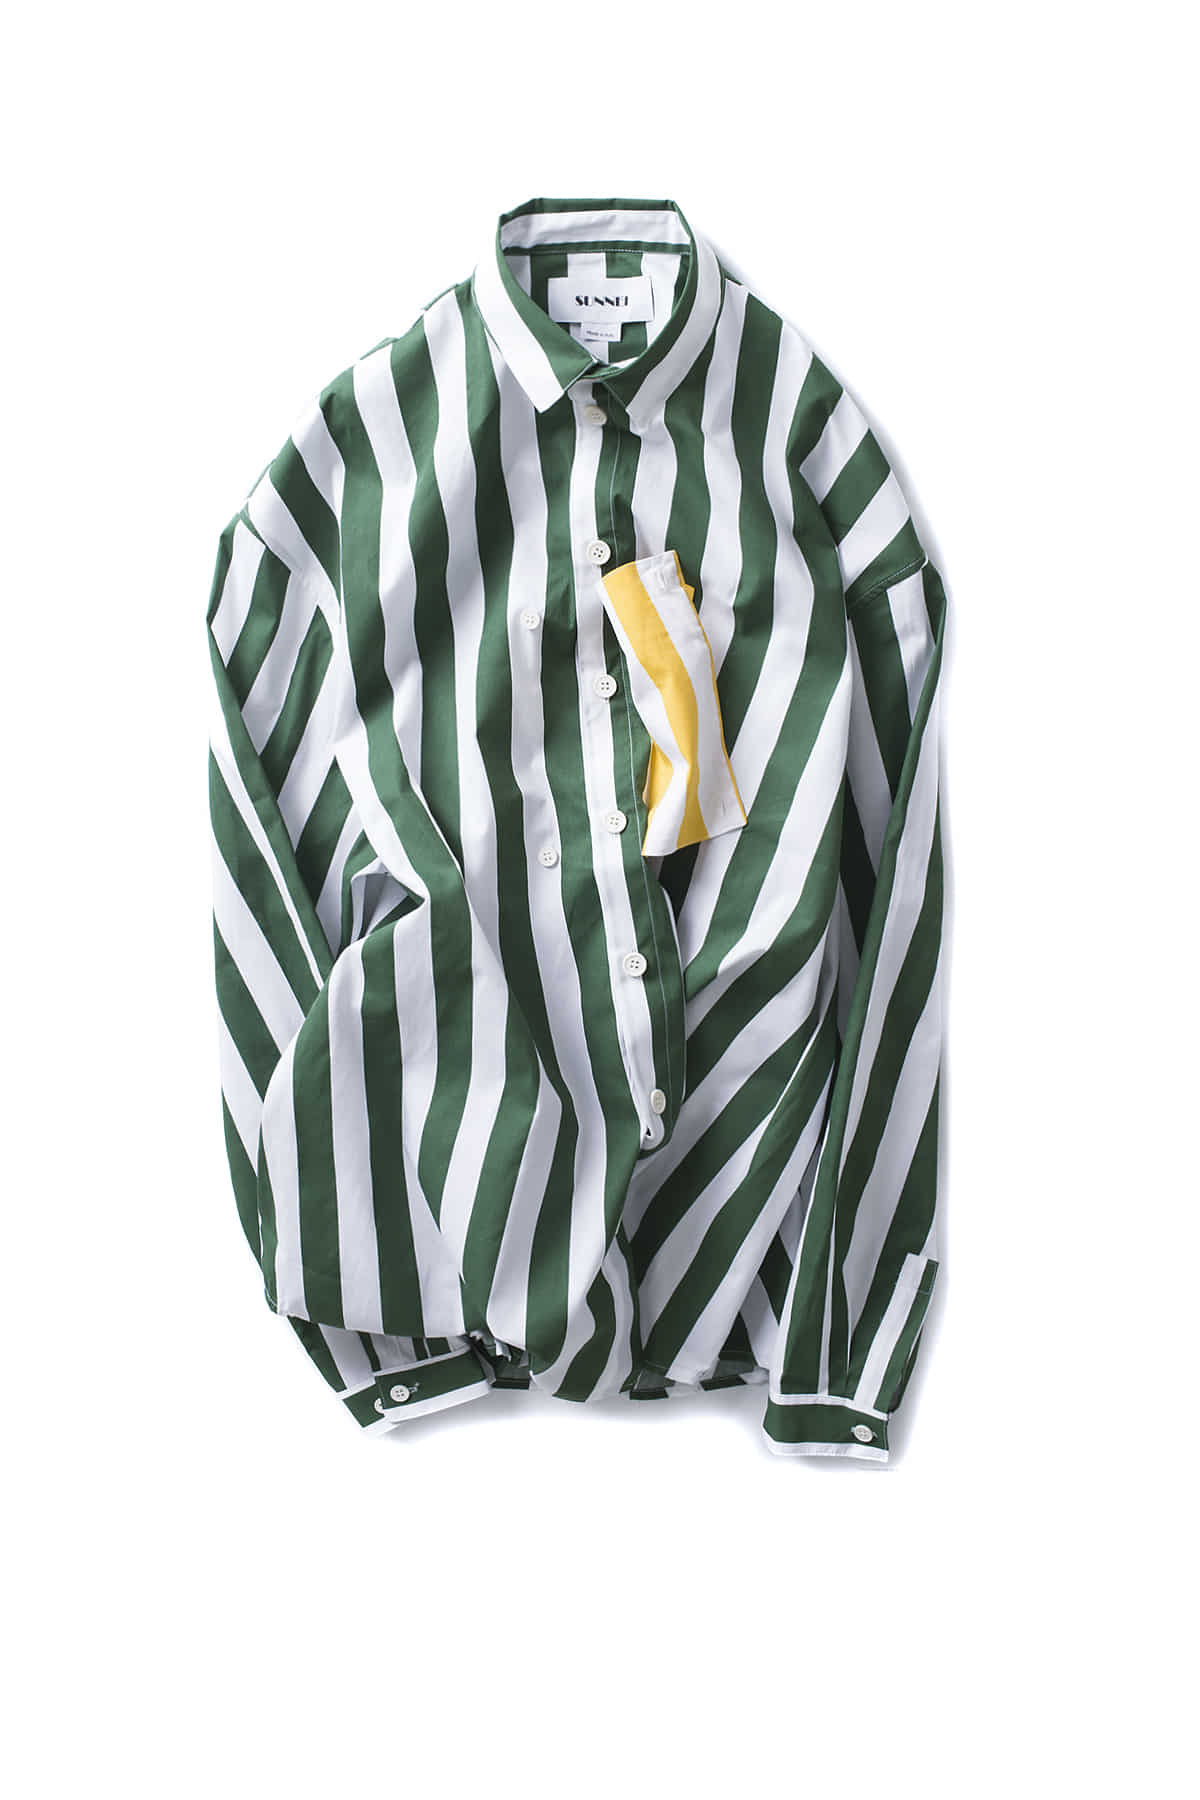 SUNNEI : Shirt With Pocket Panel (Green Stripe)